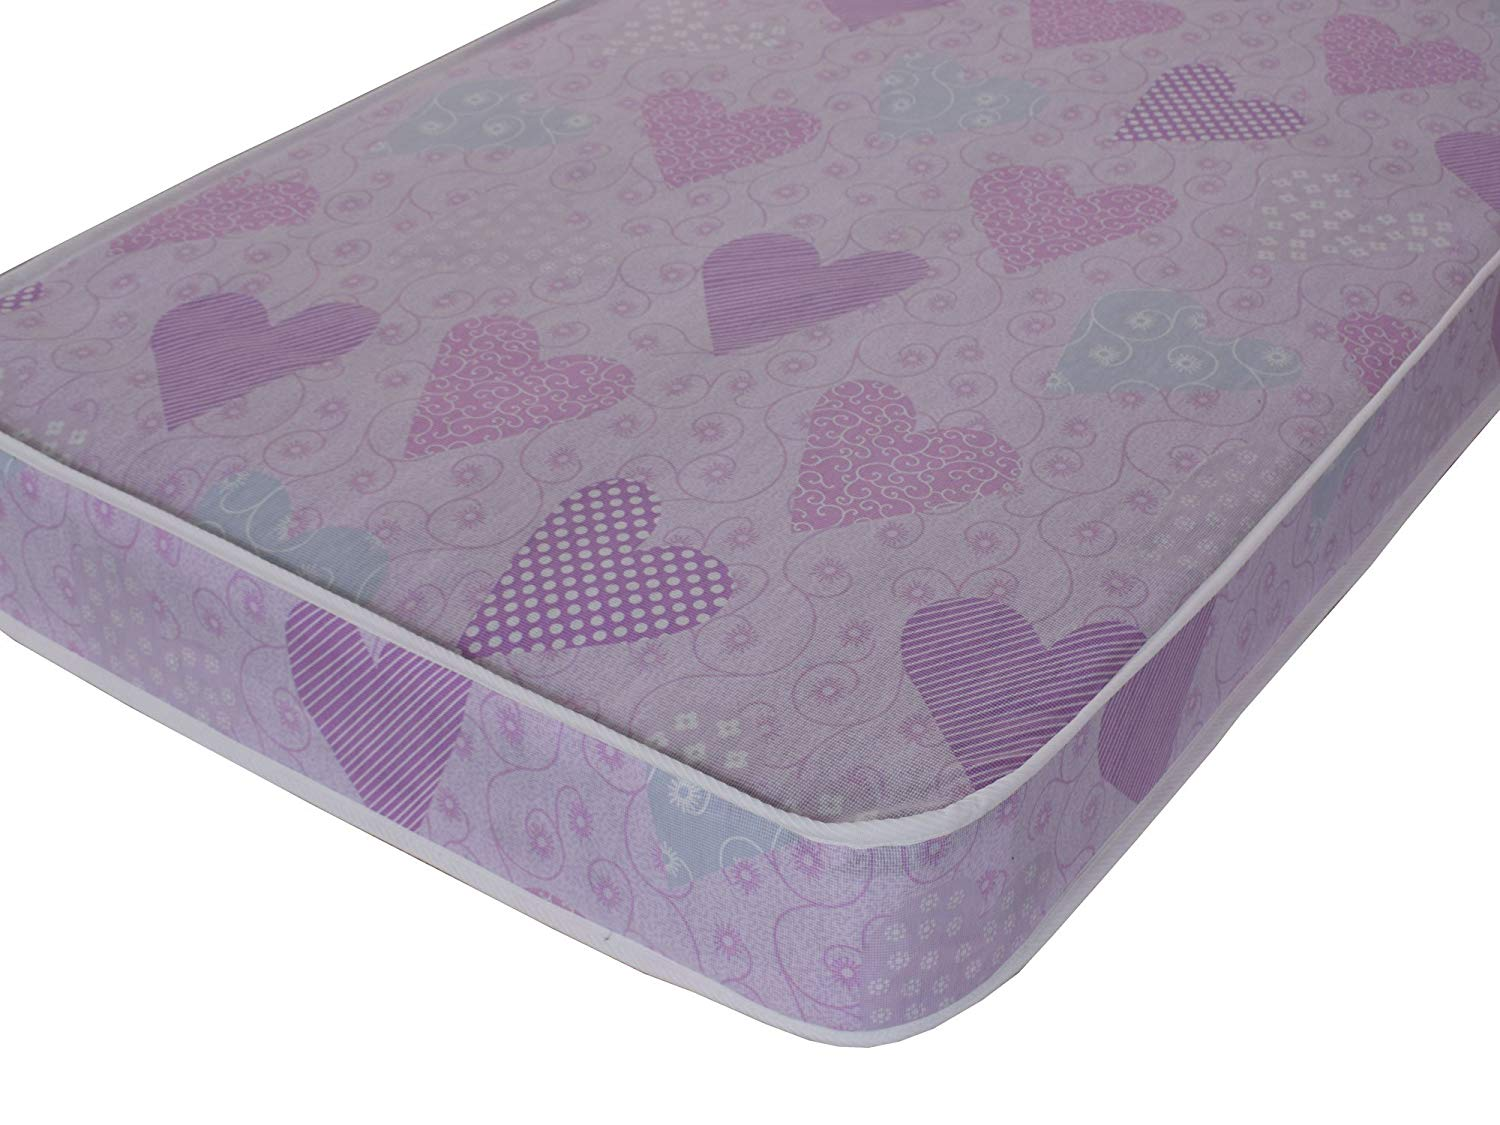 eXtreme Comfort Ltd 3ft Standard Size Pink Economy Mattress, single mattress with fast delivery